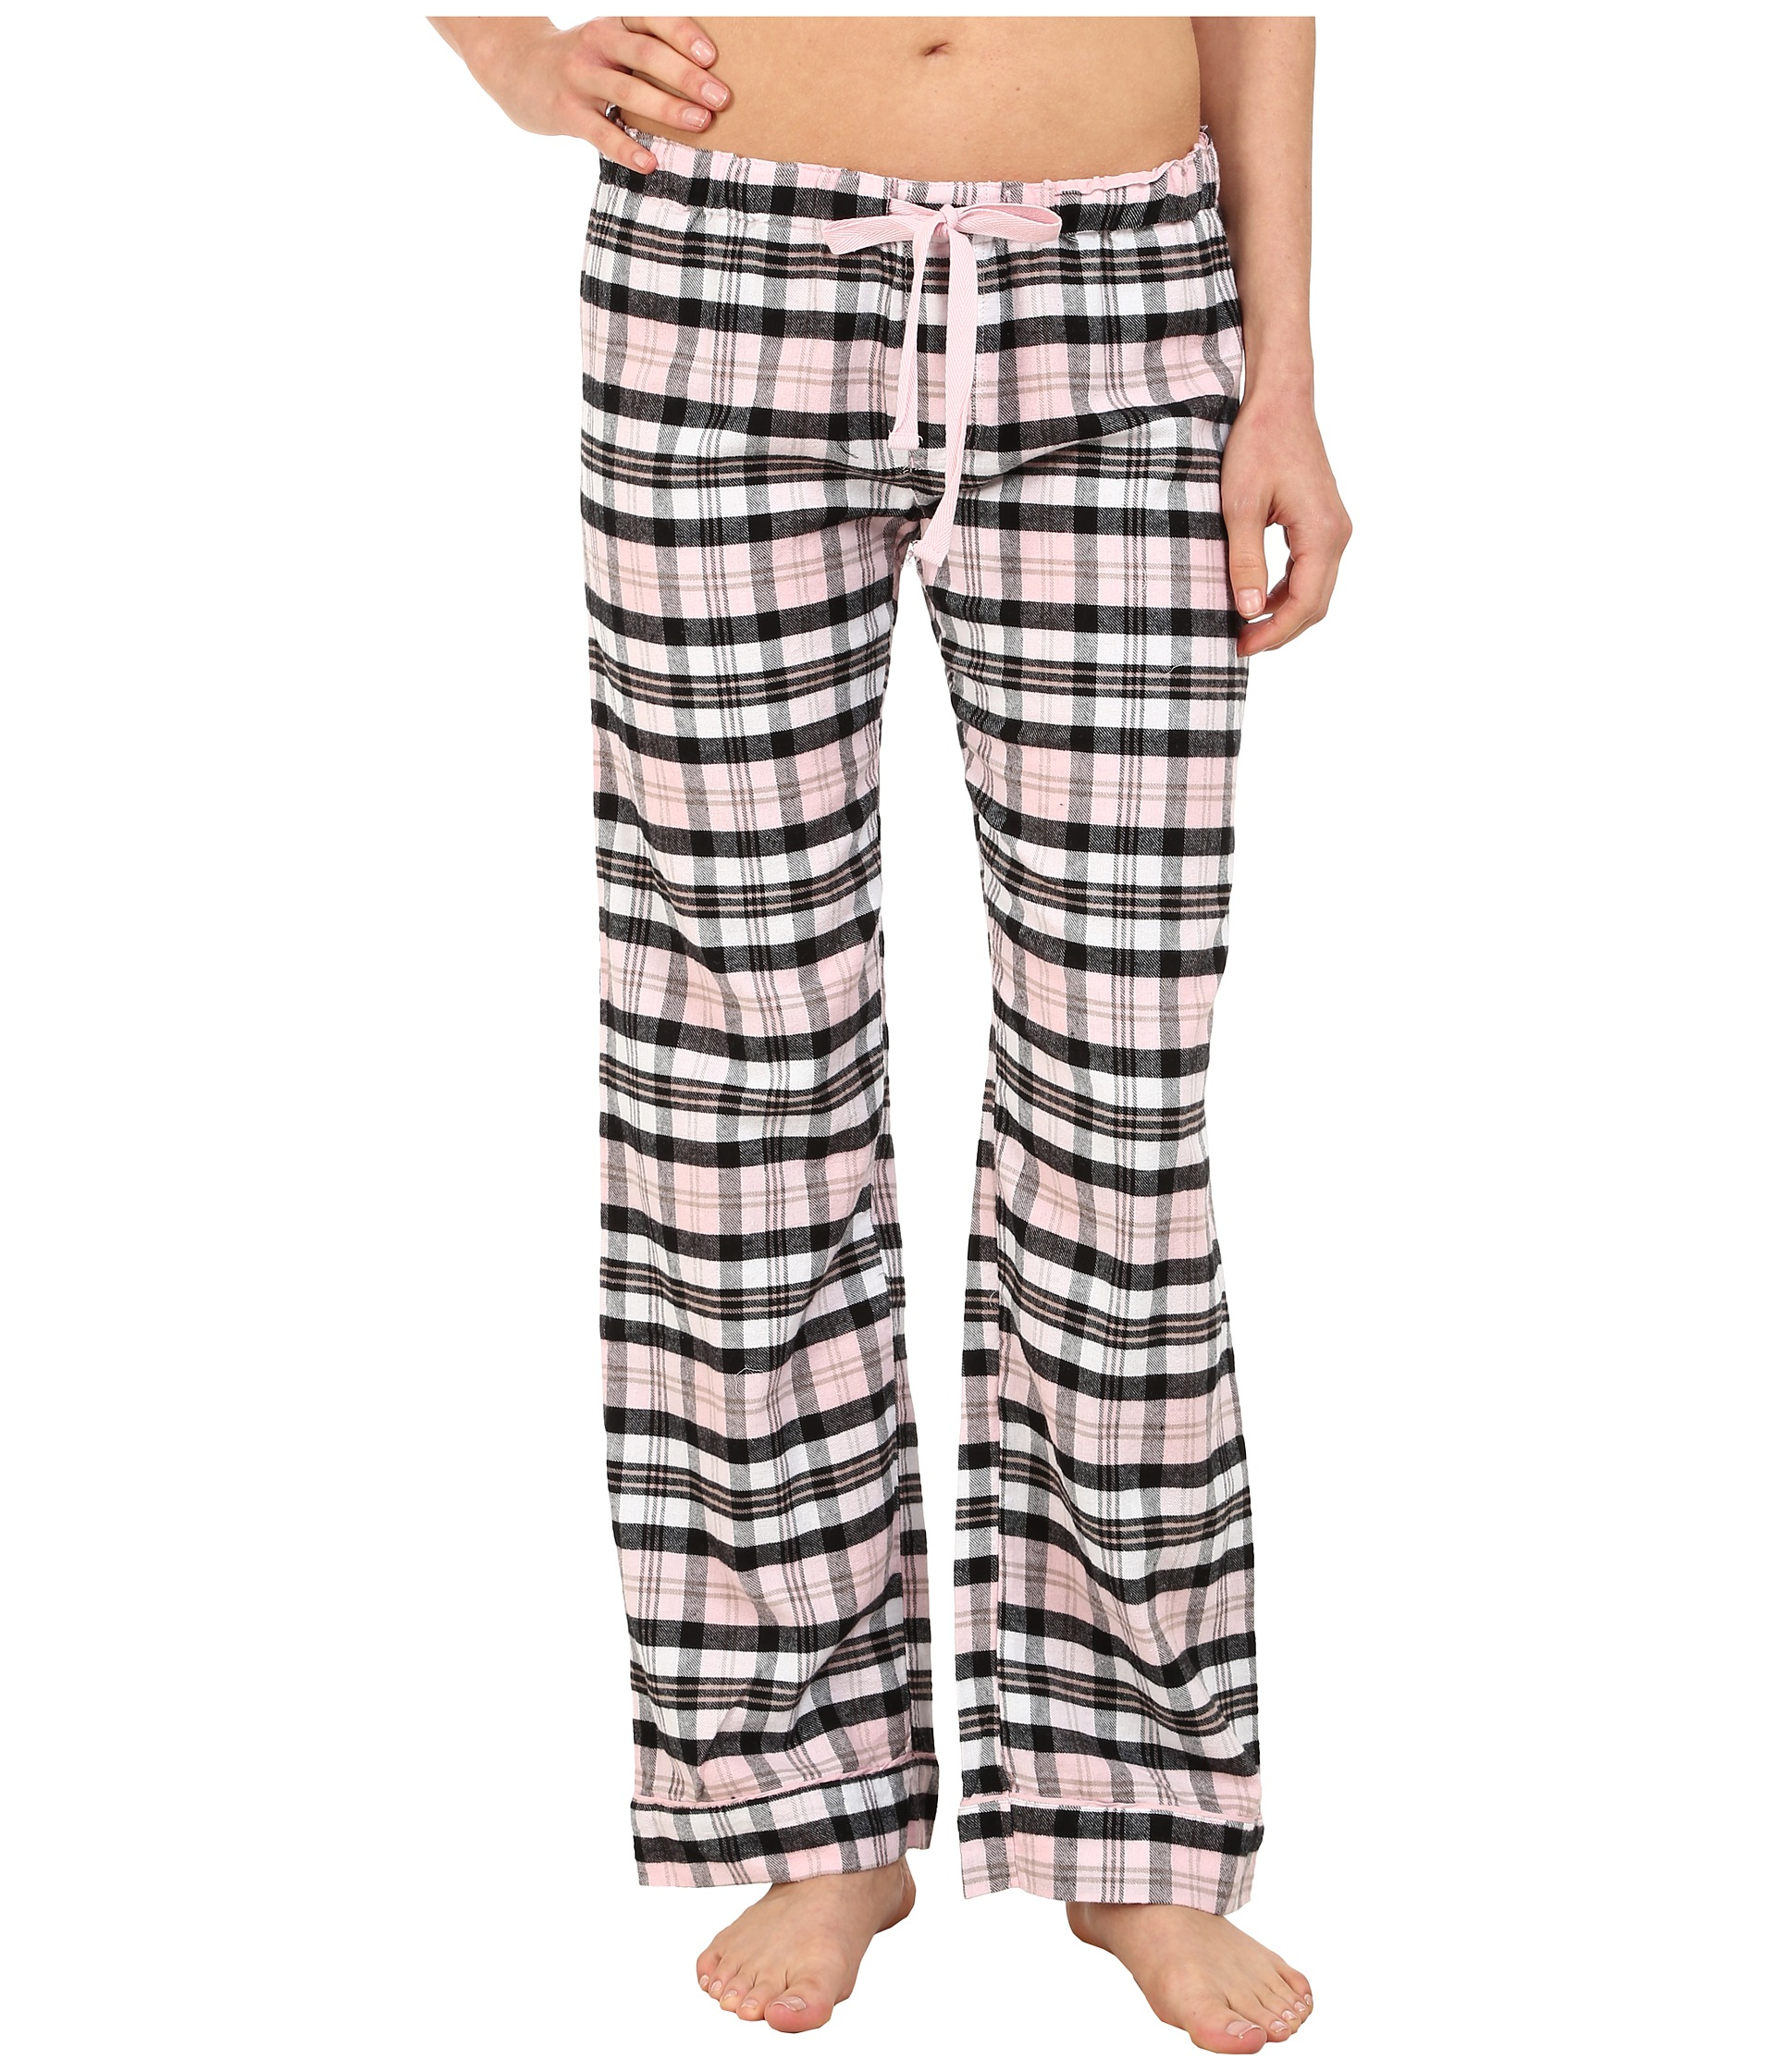 6be8e9b40f7 Lyst - Pj Salvage Blk N Blush Sleep Pants in Pink